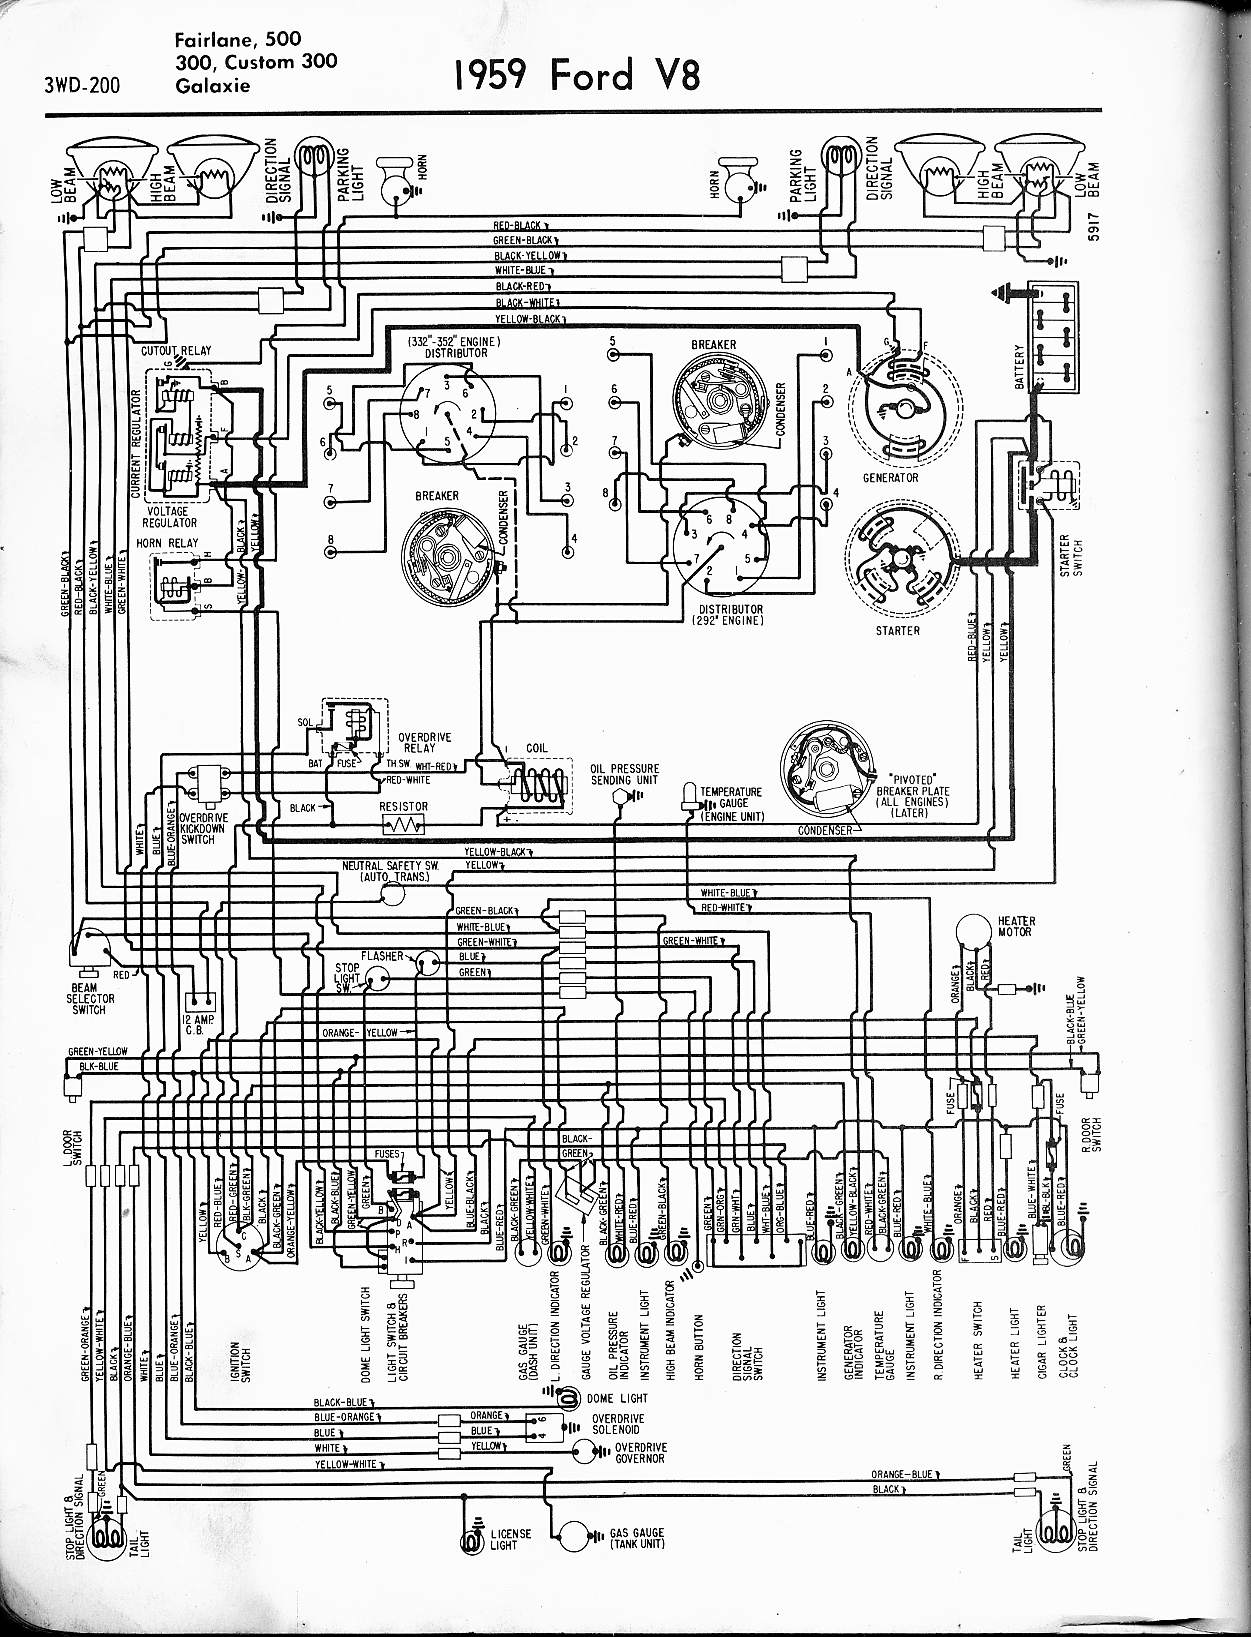 MWire5765 200 57 65 ford wiring diagrams 1968 ford galaxie 500 wiring diagram at fashall.co